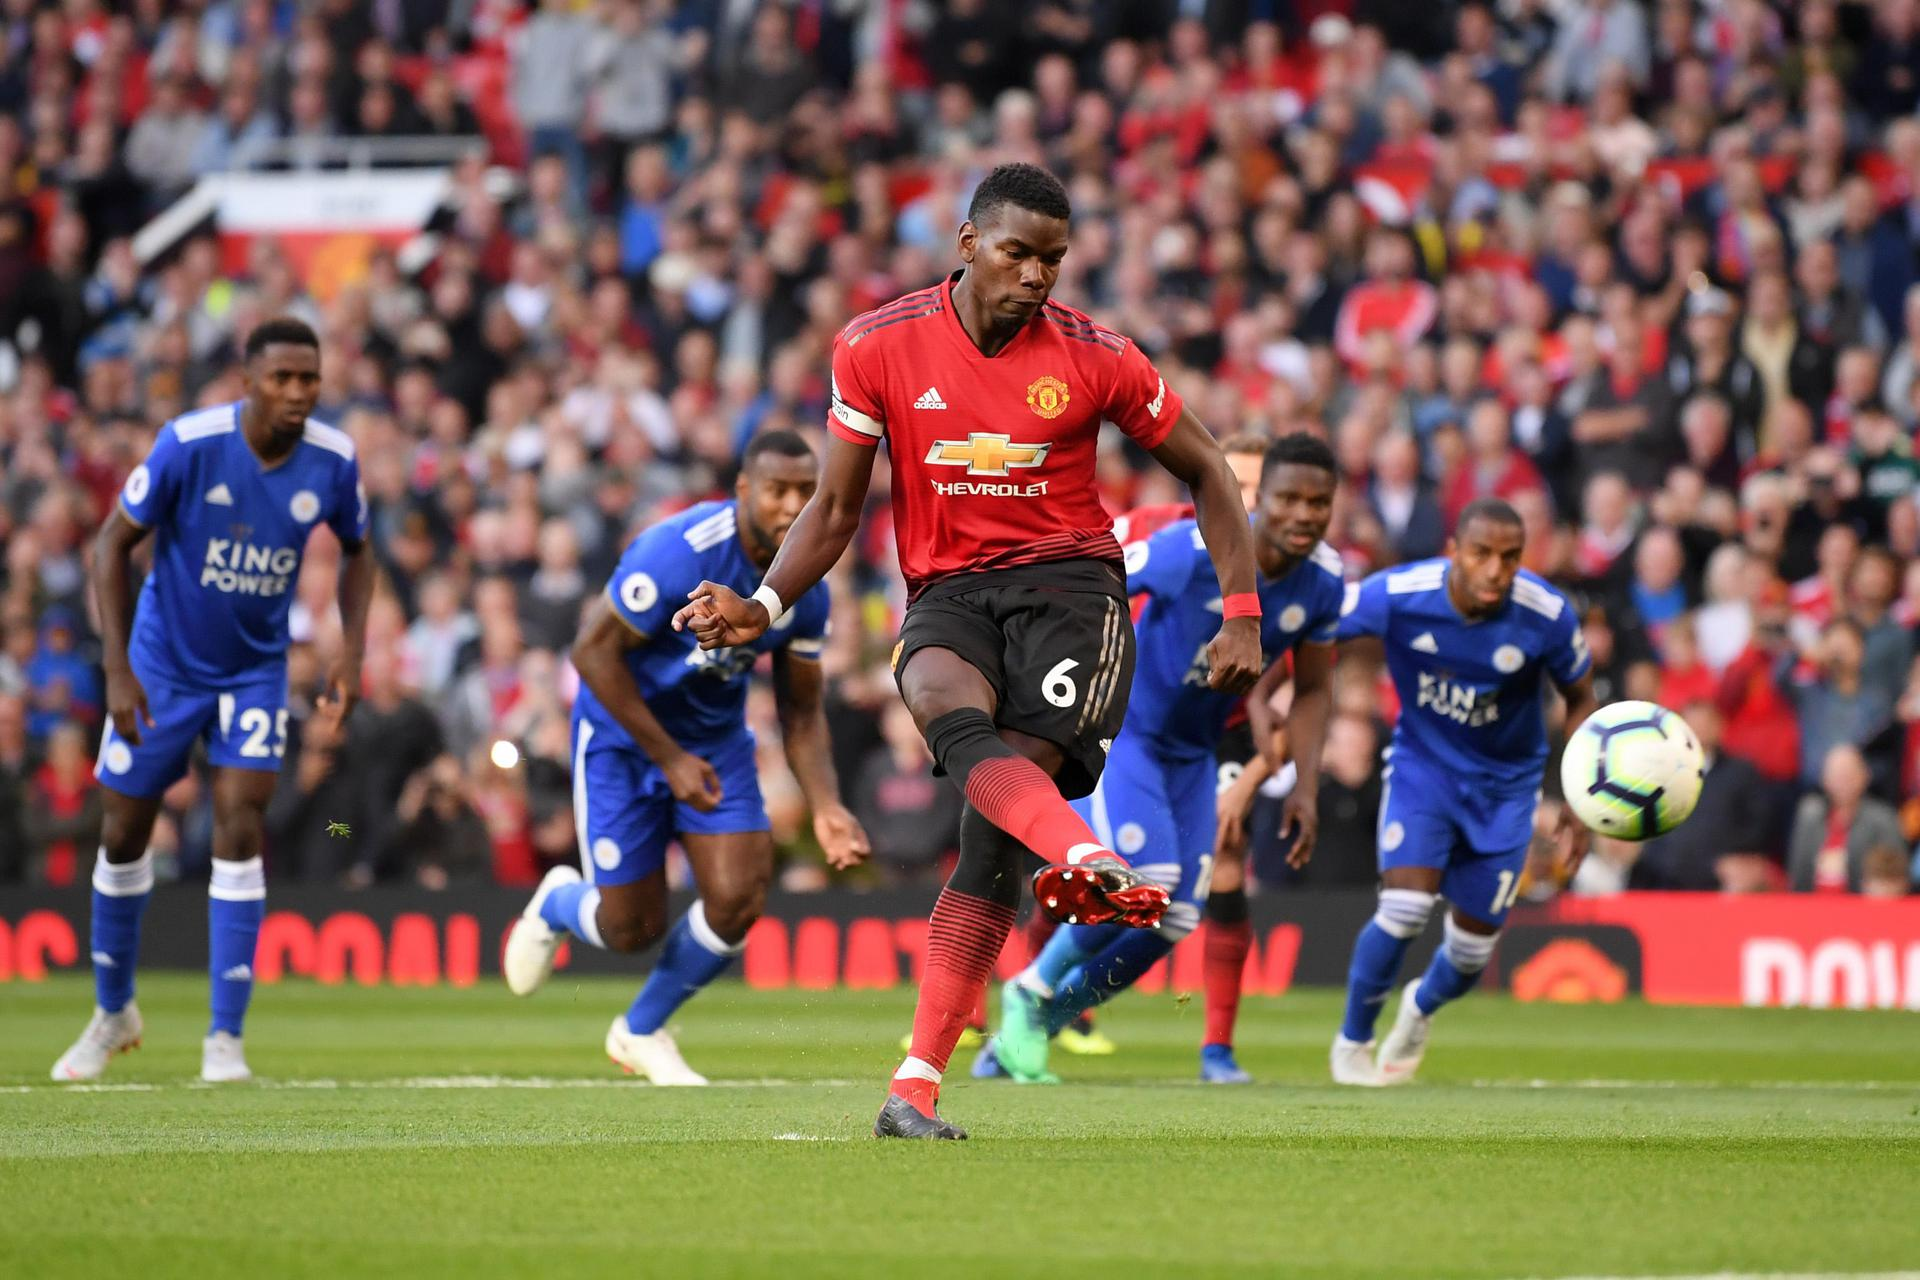 Paul Pogba scores a penalty against Leicester City.